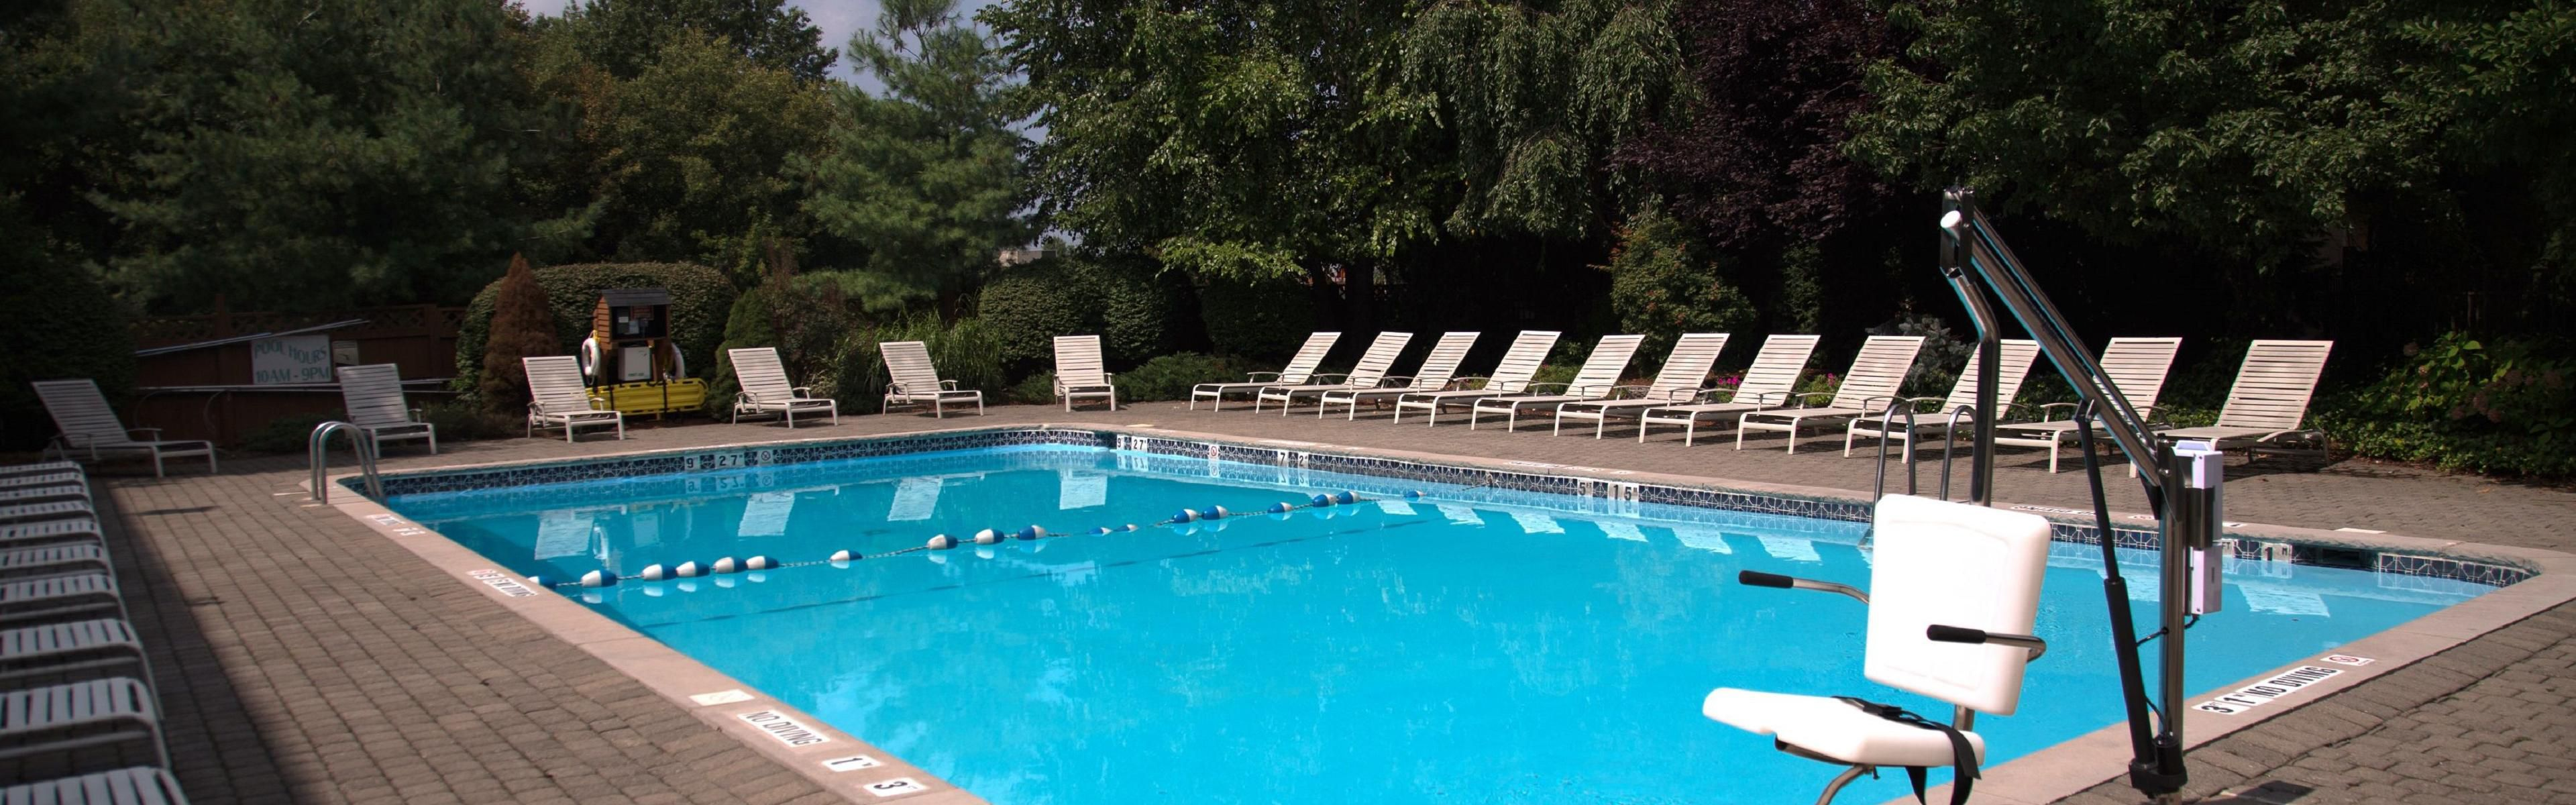 Hotels in parsippany new jersey 07054 / Jlab bombora review